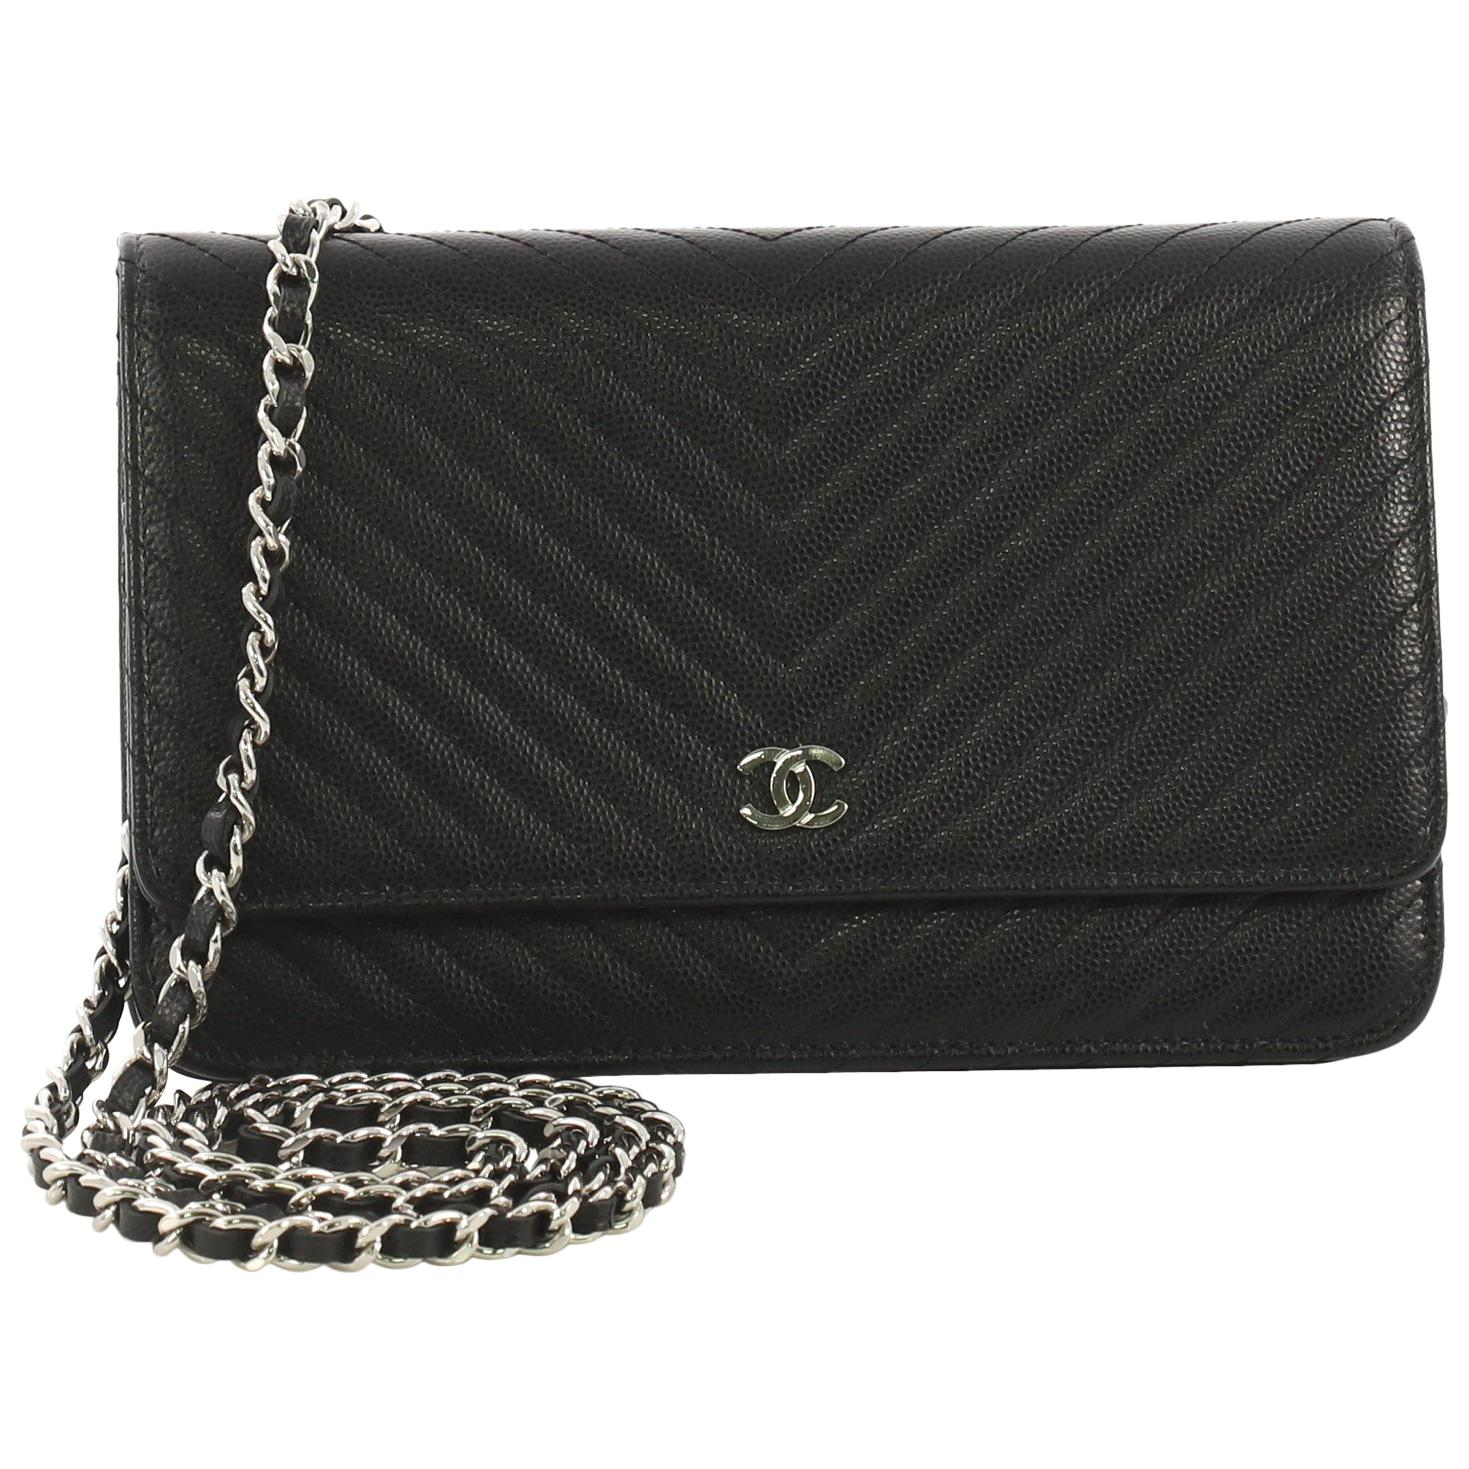 f3afc36c3c8569 Vintage Chanel Wallets and Small Accessories - 181 For Sale at 1stdibs